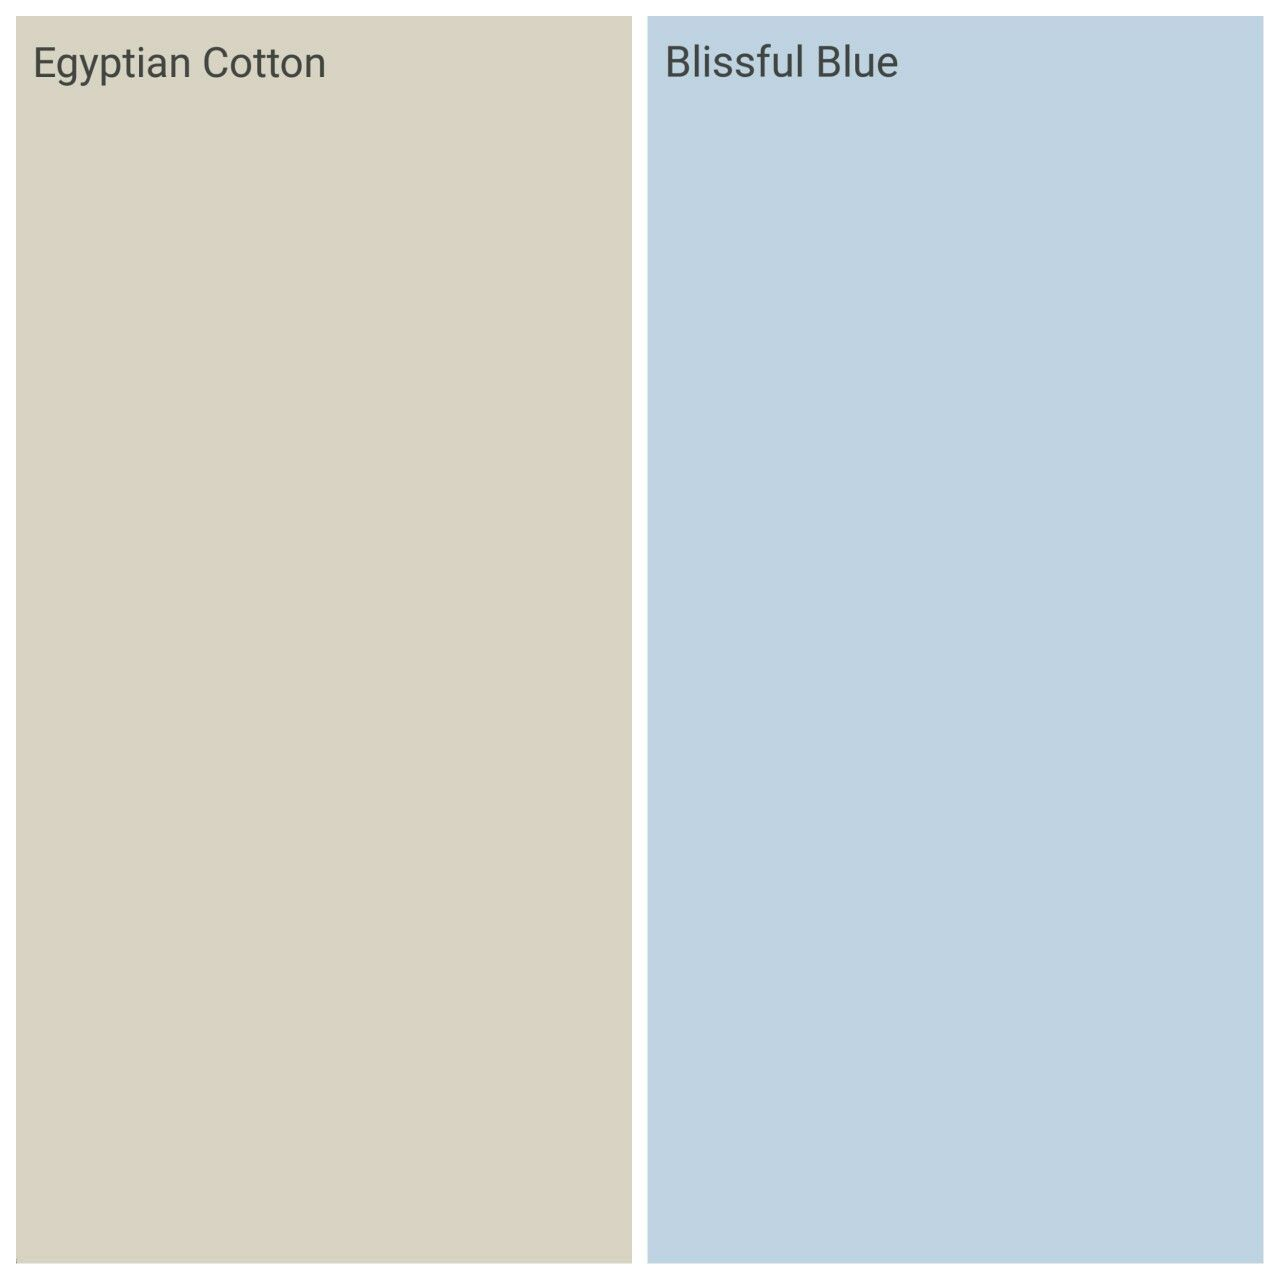 Dulux Blissful Blue And Egyptian Cotton, Guest Bedroom